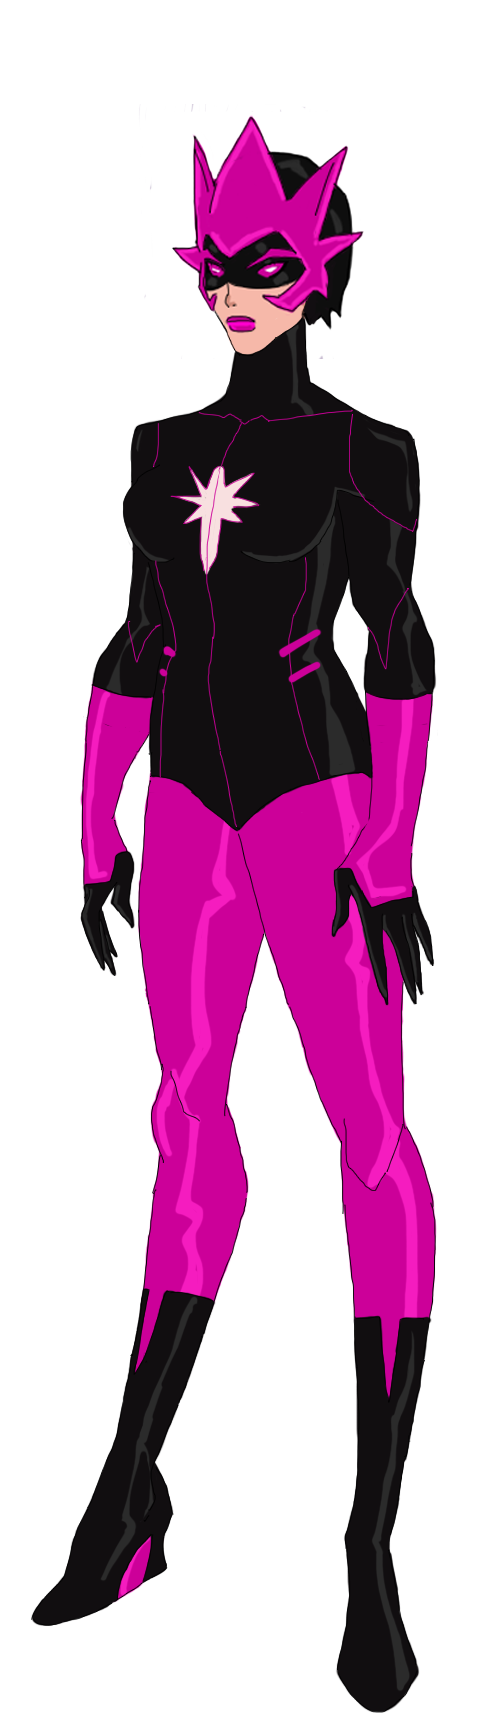 Injustice League Star Sapphire V.2 (FINAL) by jsenior on ...